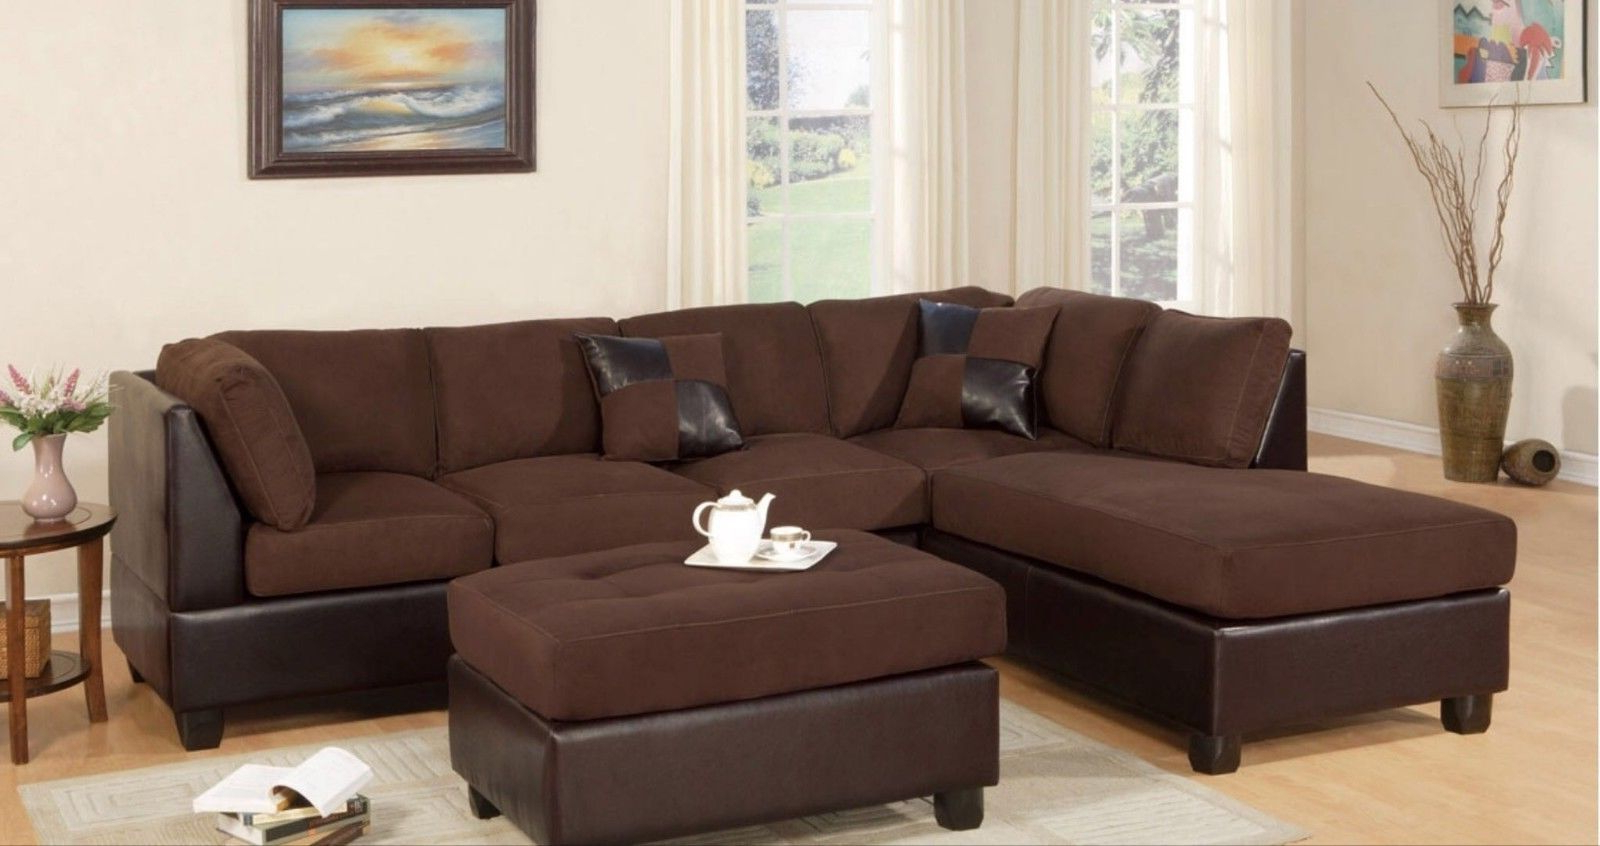 Norfolk Chocolate 6 Piece Sectionals With Regard To 2019 Sectional Sofa Modern Fabric Microfiber Faux Leather Sectional Sofa (View 16 of 20)